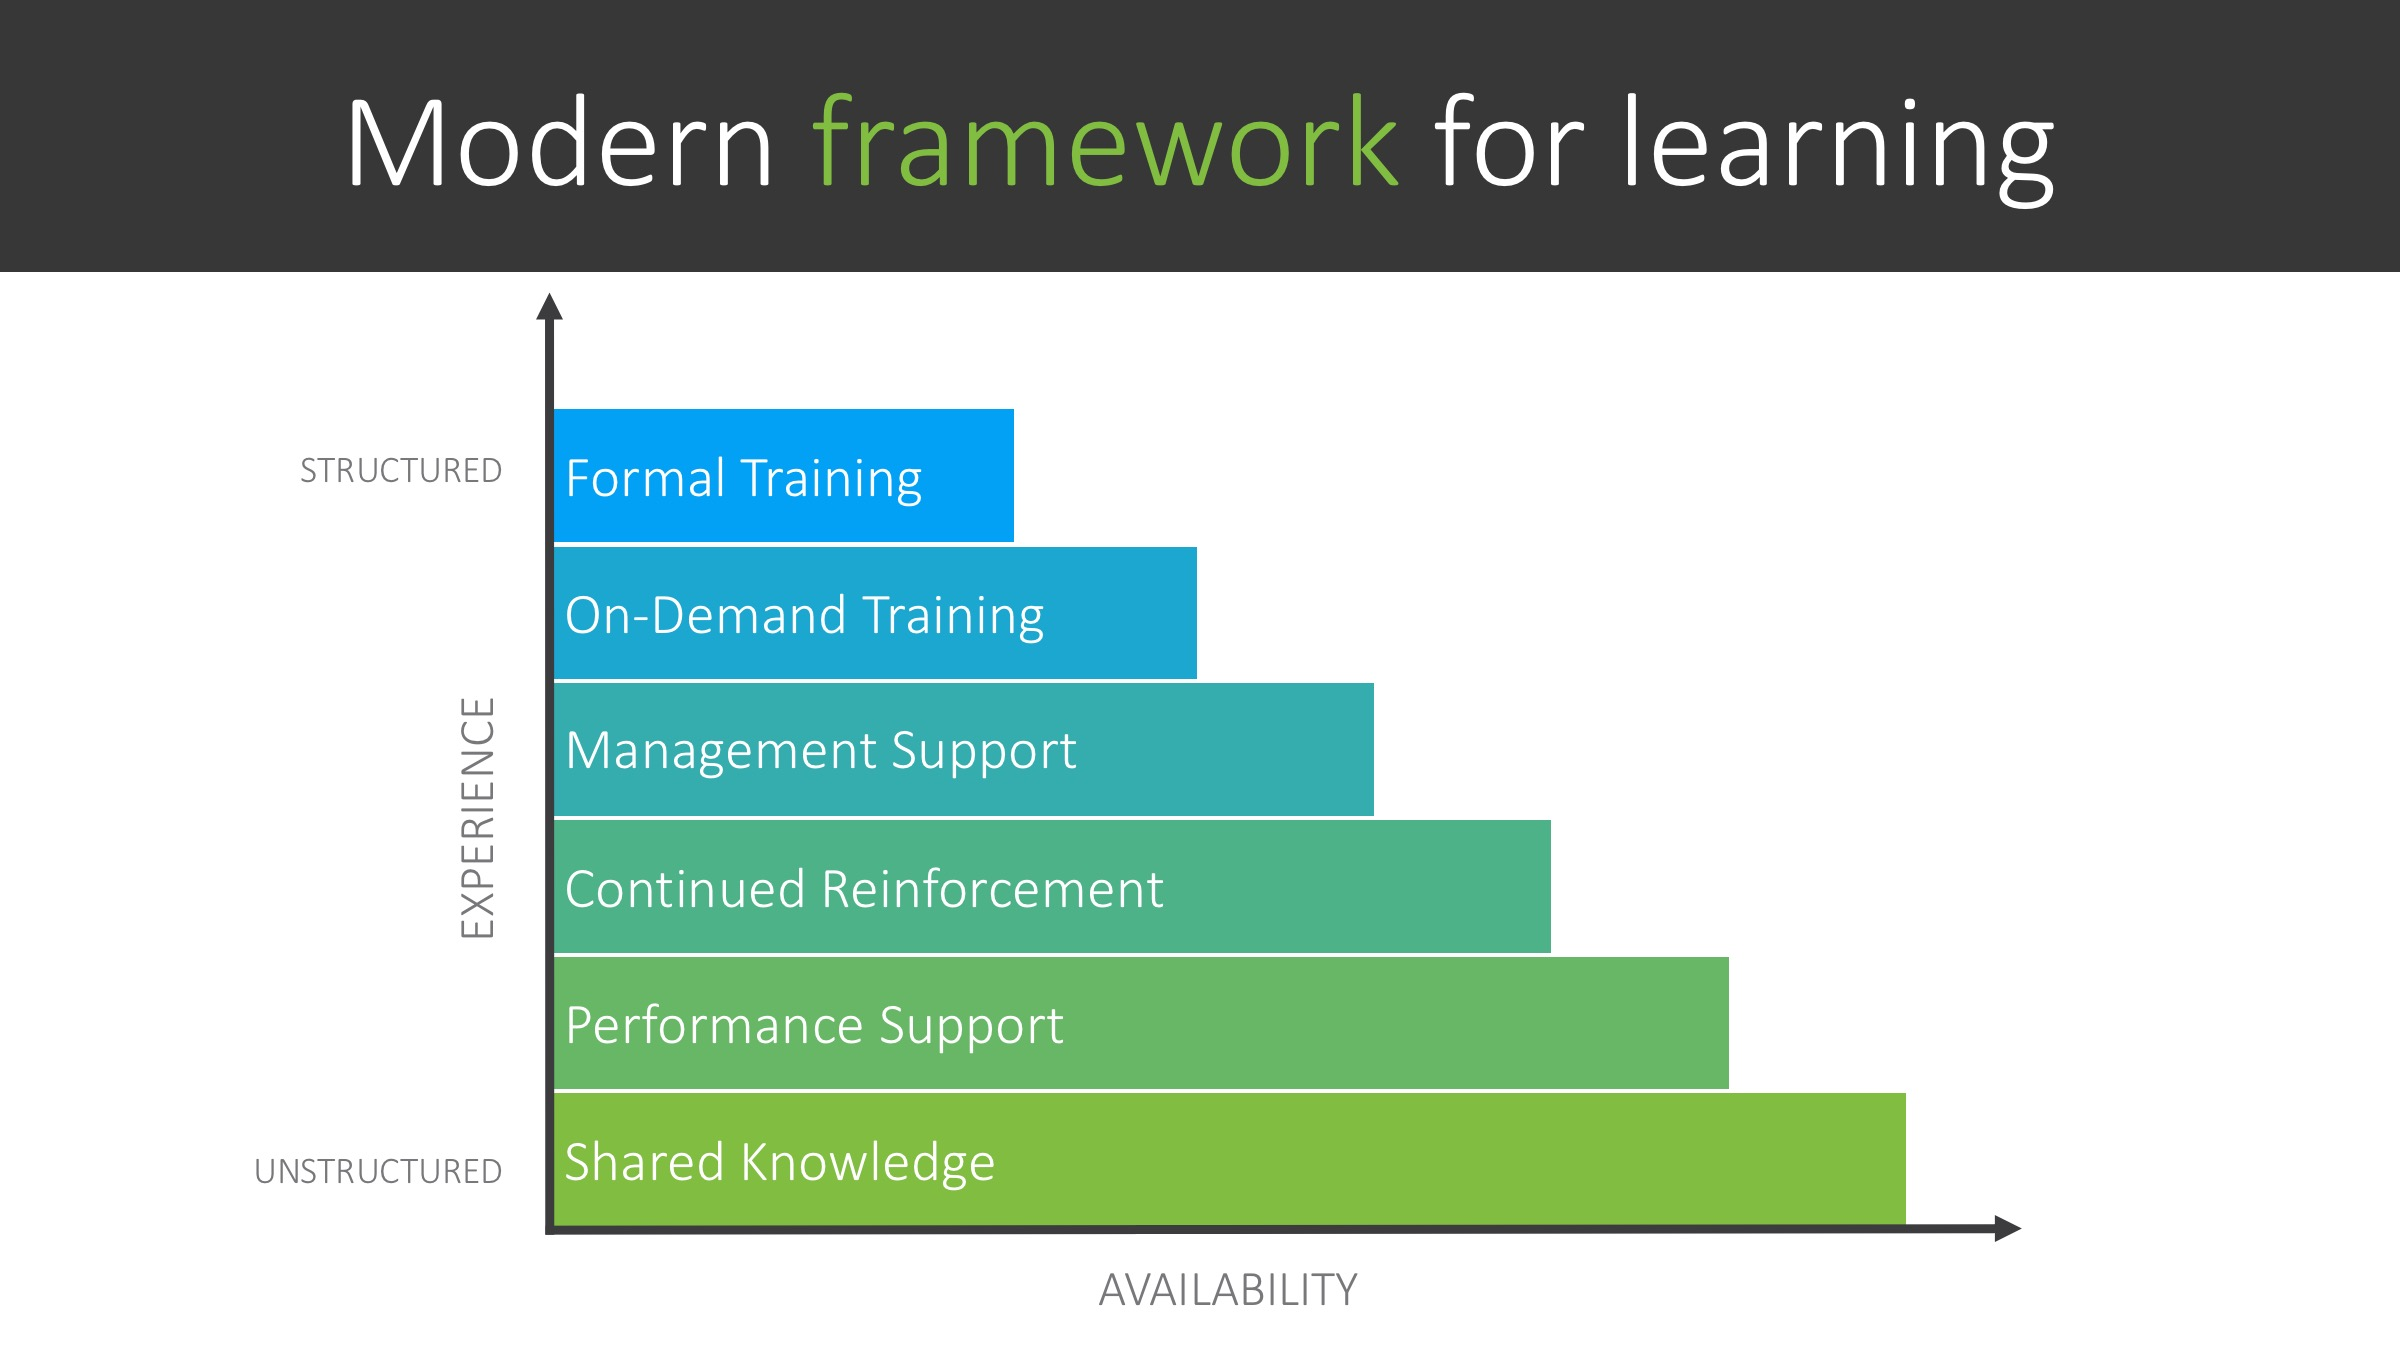 Modern framework for learning